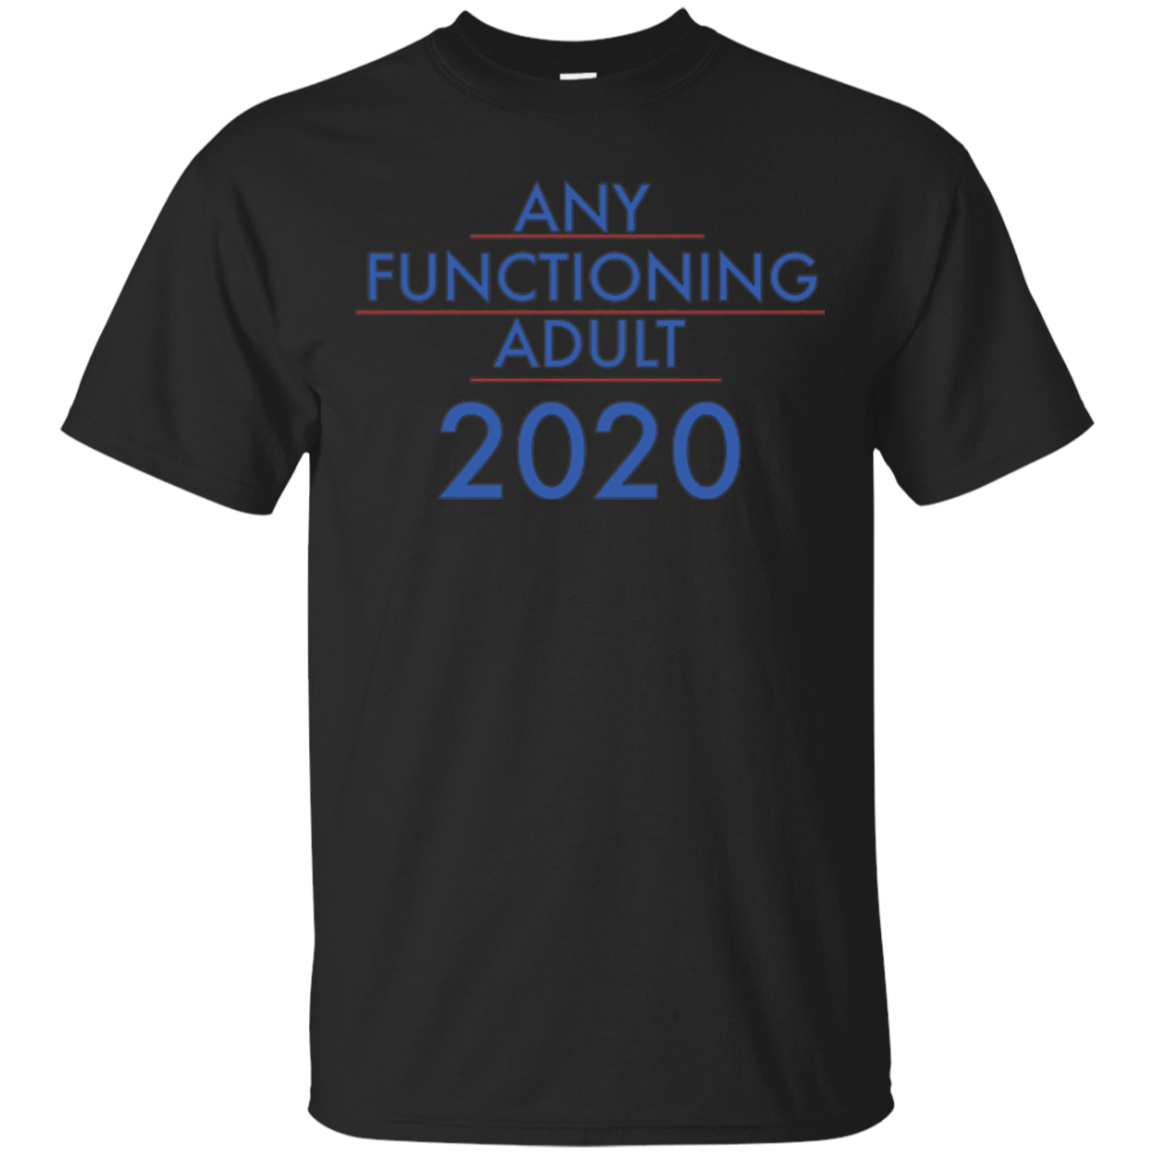 Any Functioning Adult 2020 | Anti-Trump t-shirt